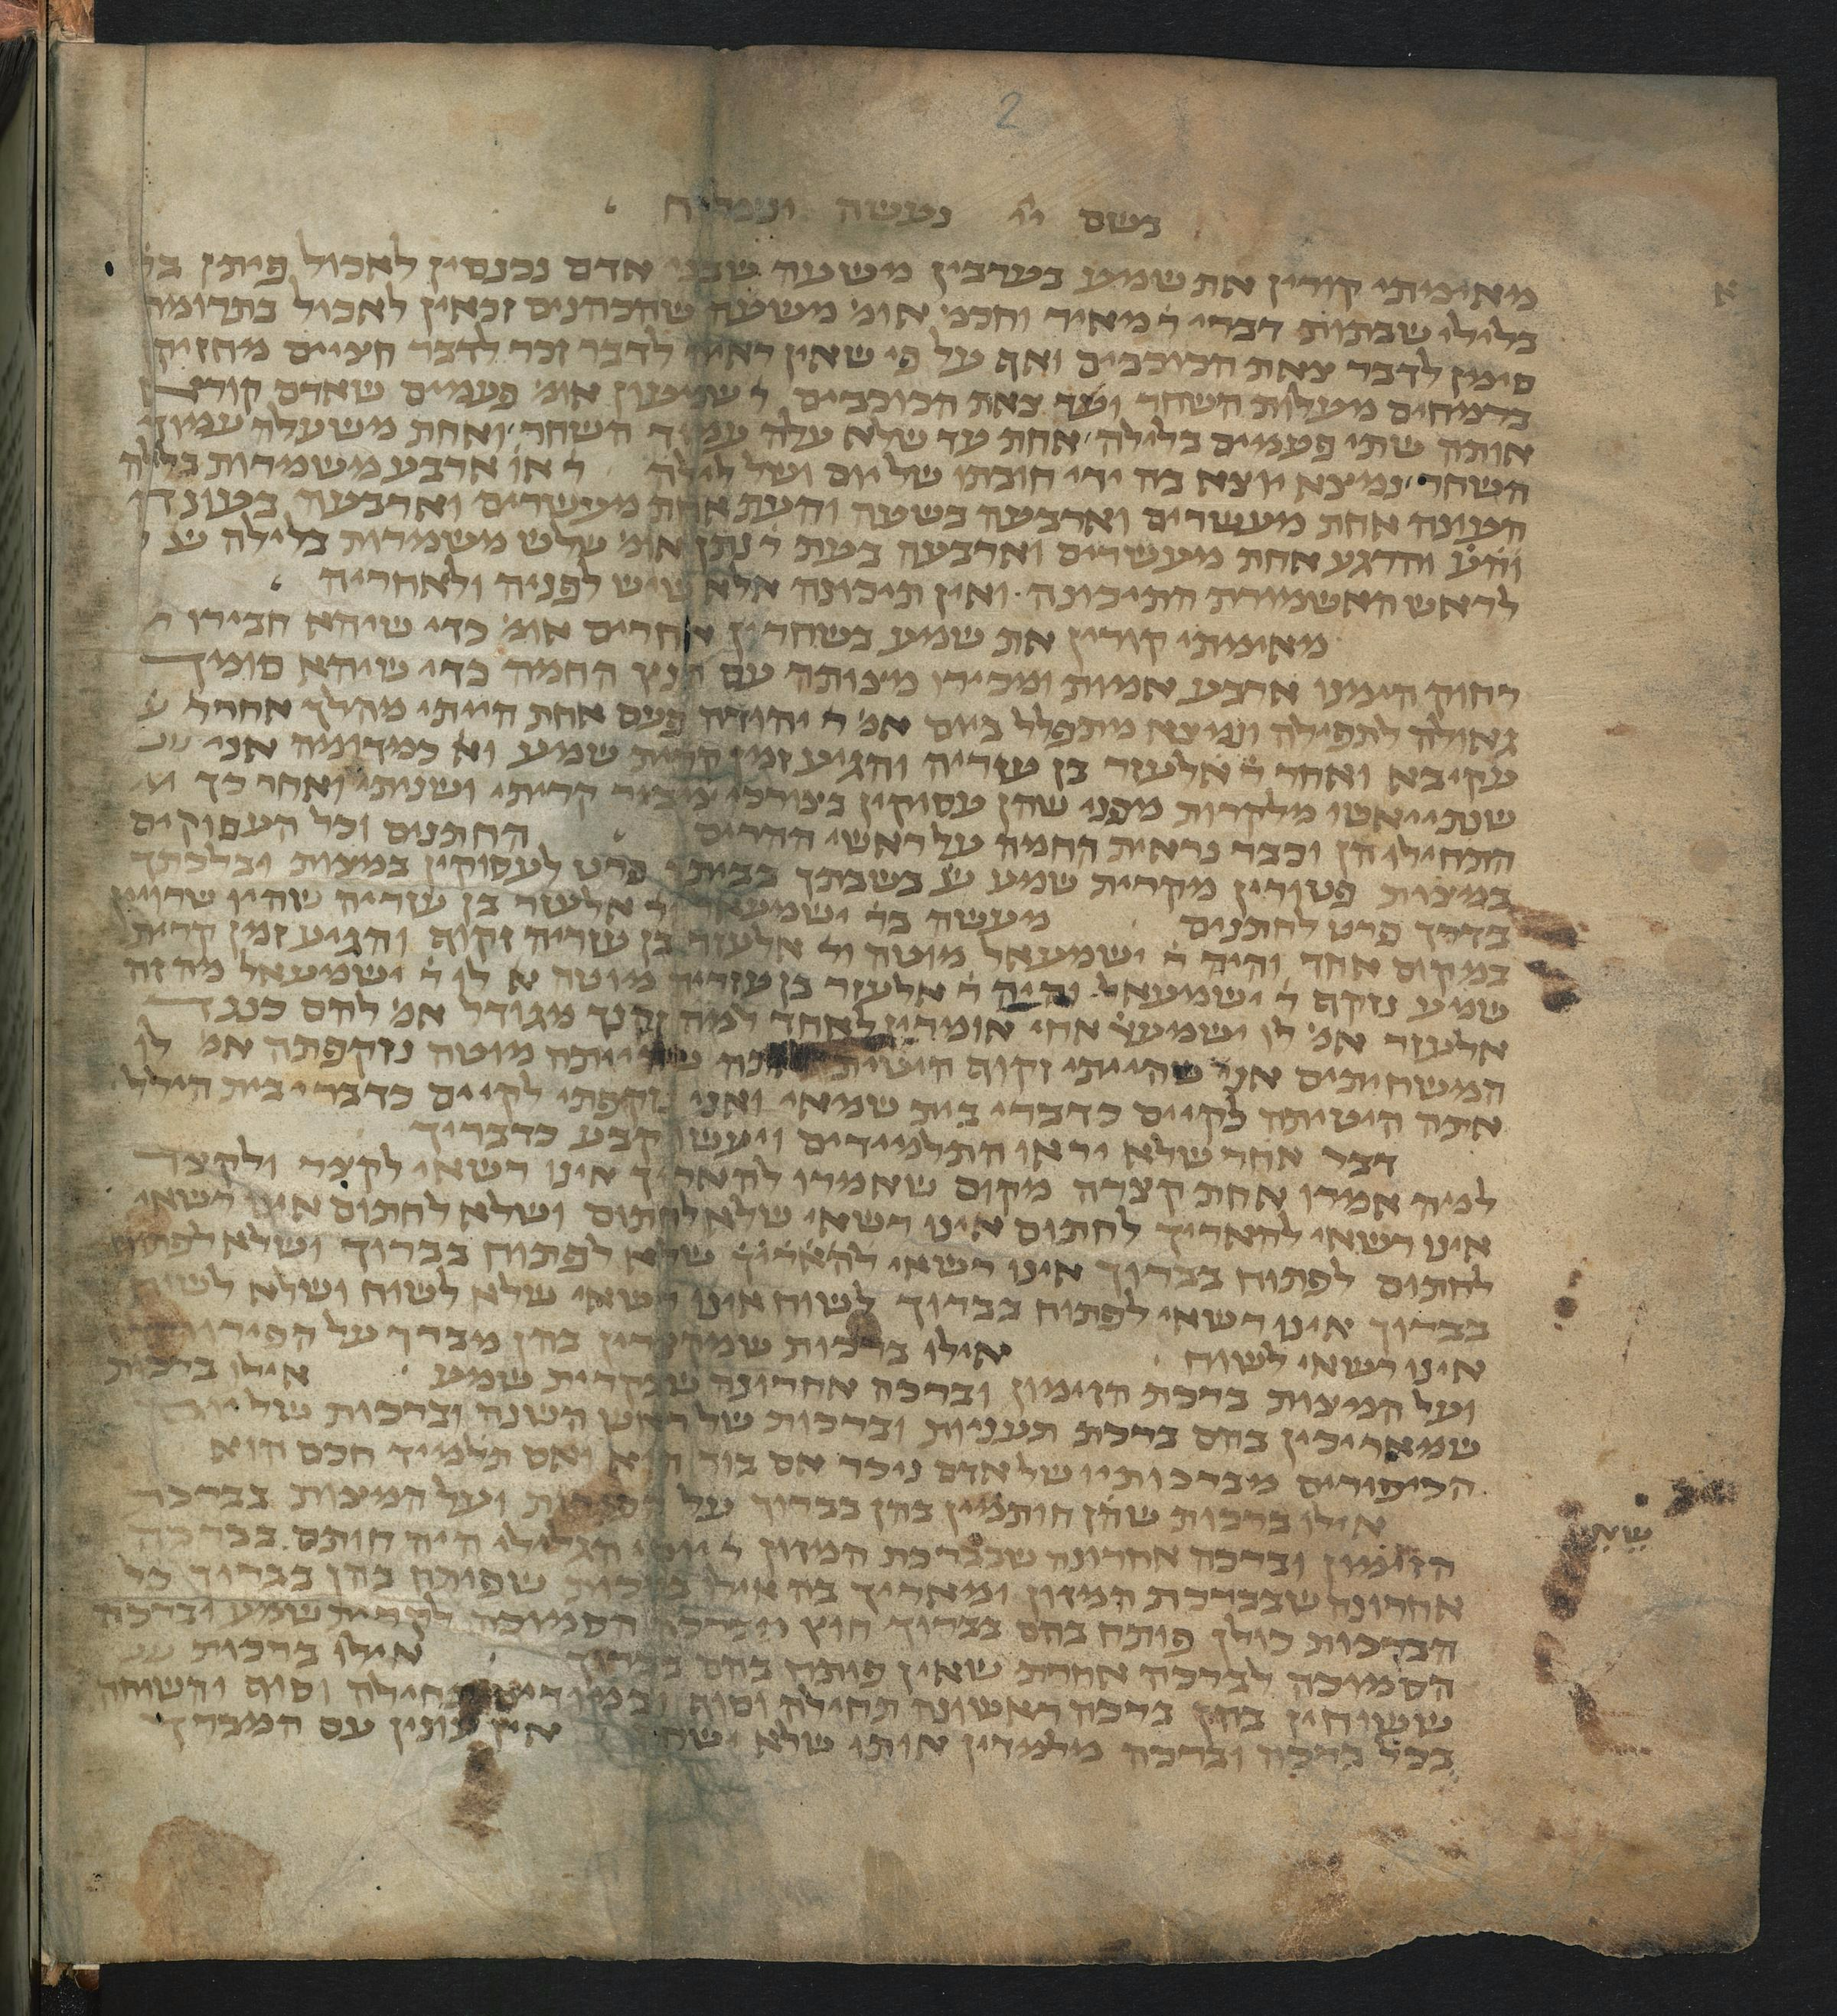 Folio 5 of the Erfurt Manuscript with the beginning of the Masechta Berachot